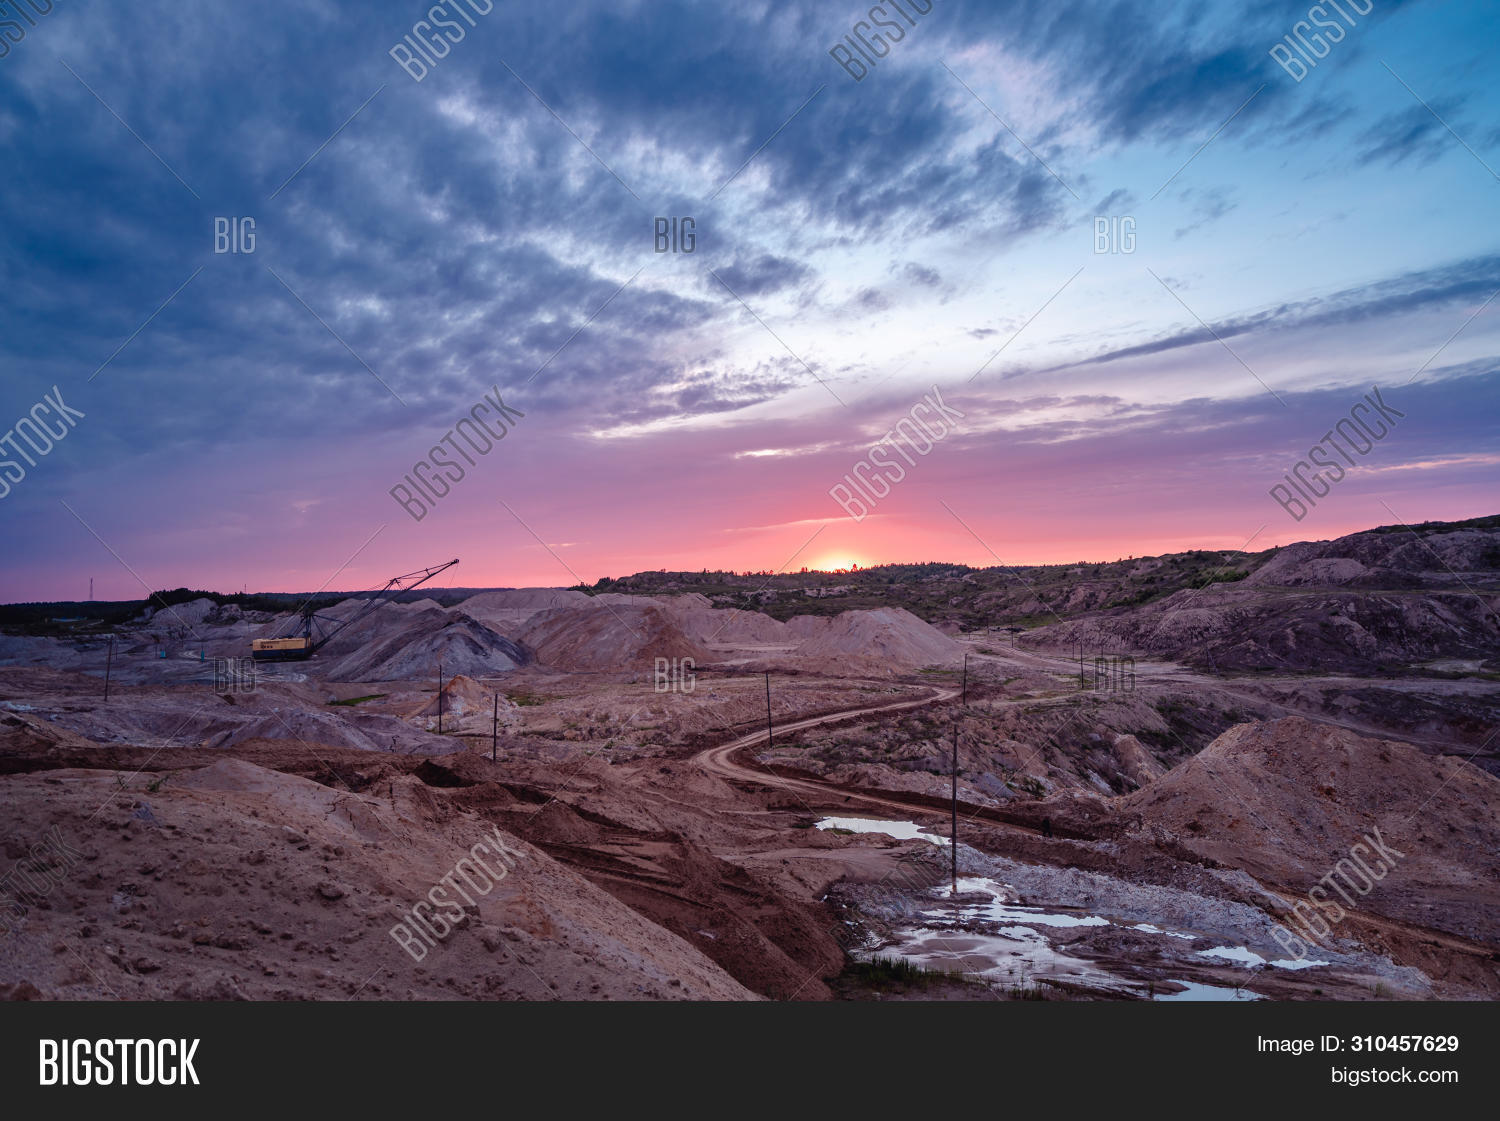 Coal Mining At An Open Pit At Sunset